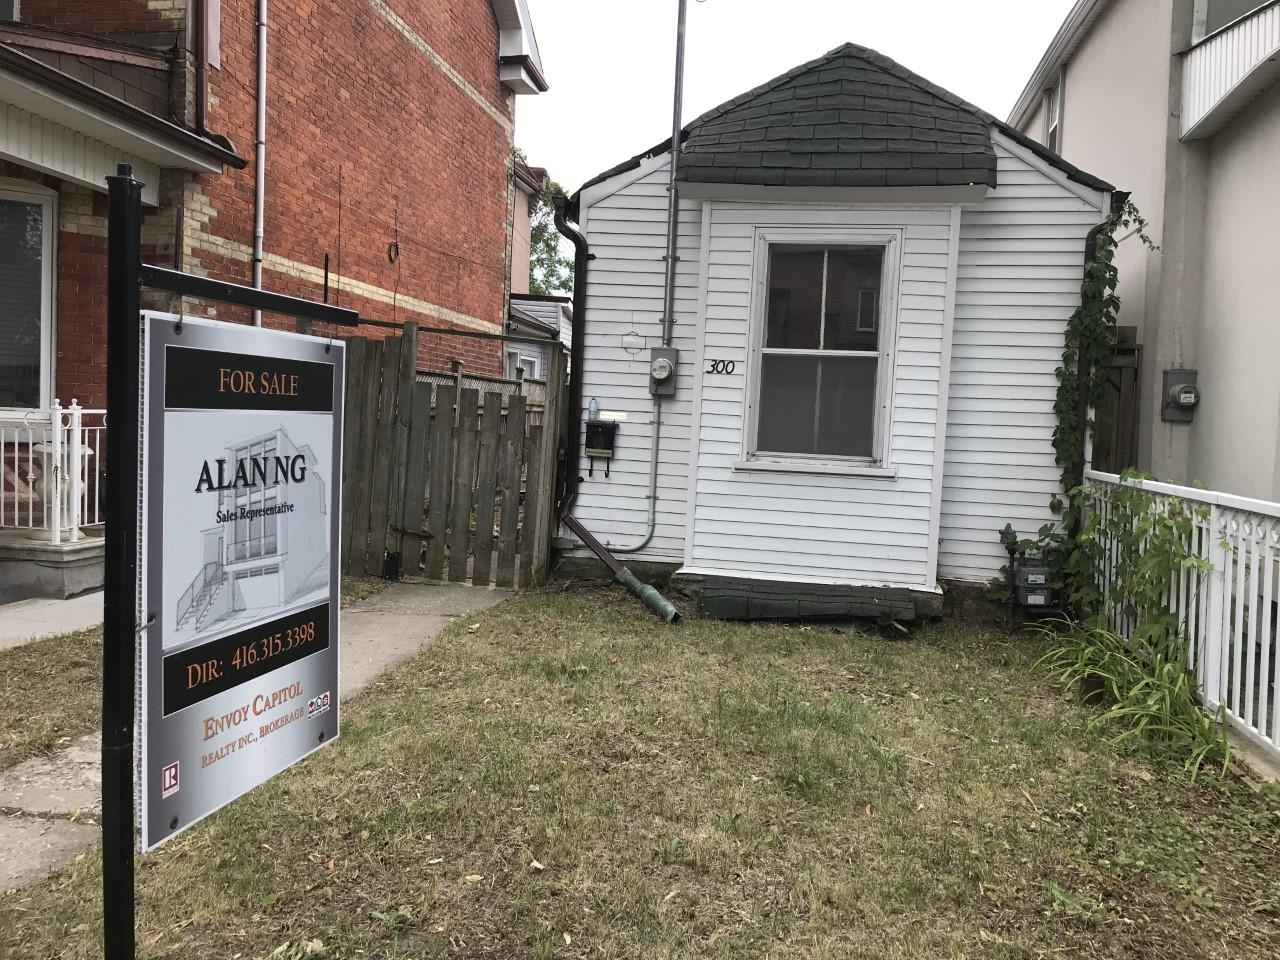 Business Report: 'Tiny' Toronto home hits market for $1M - CityNews Toronto